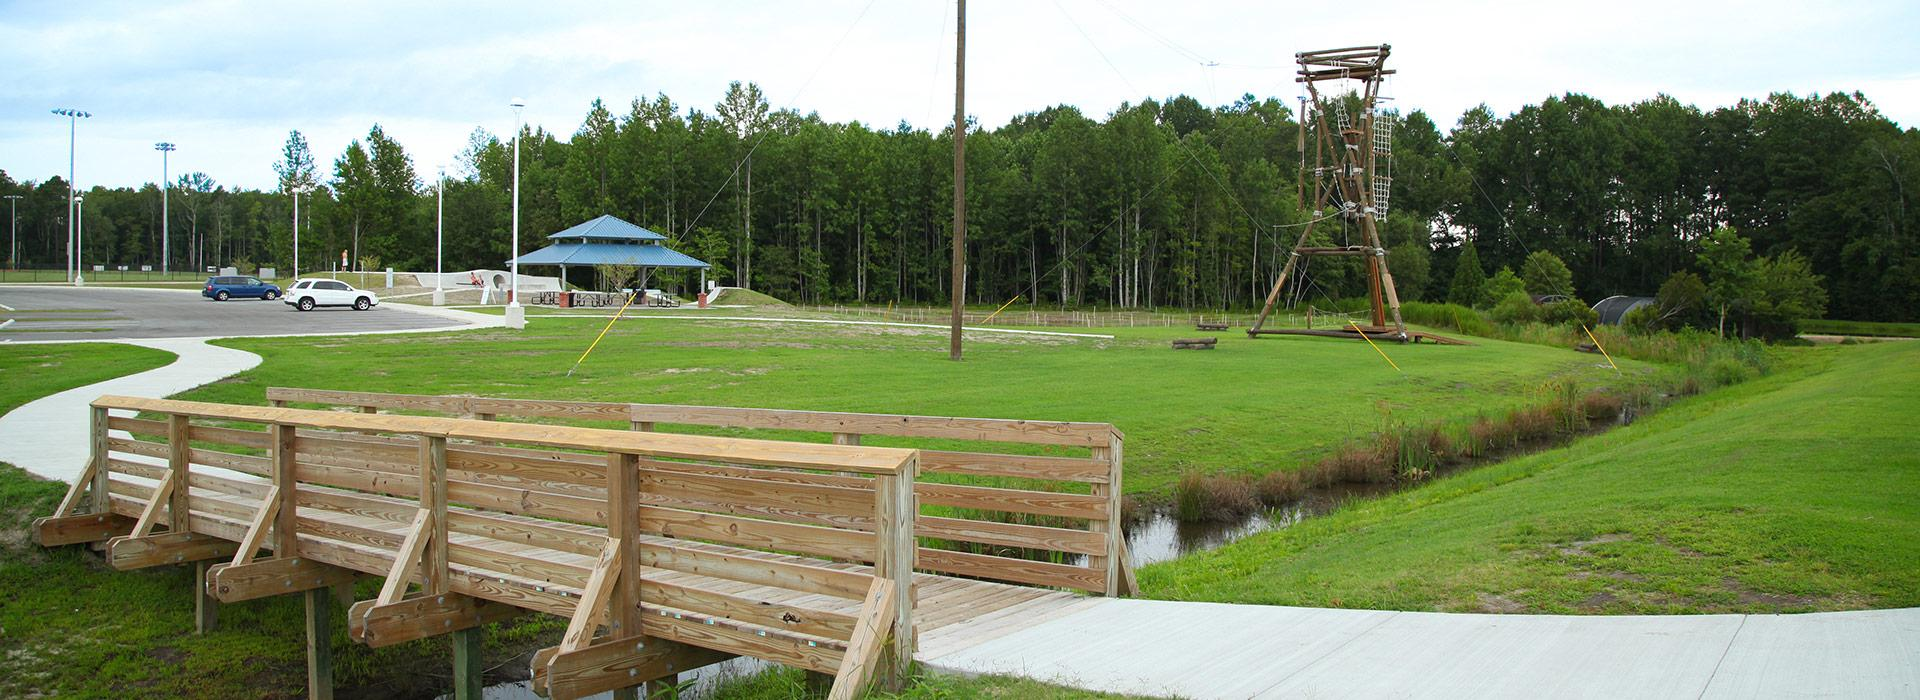 wide shot of grass and outdoor area from Currituck Y